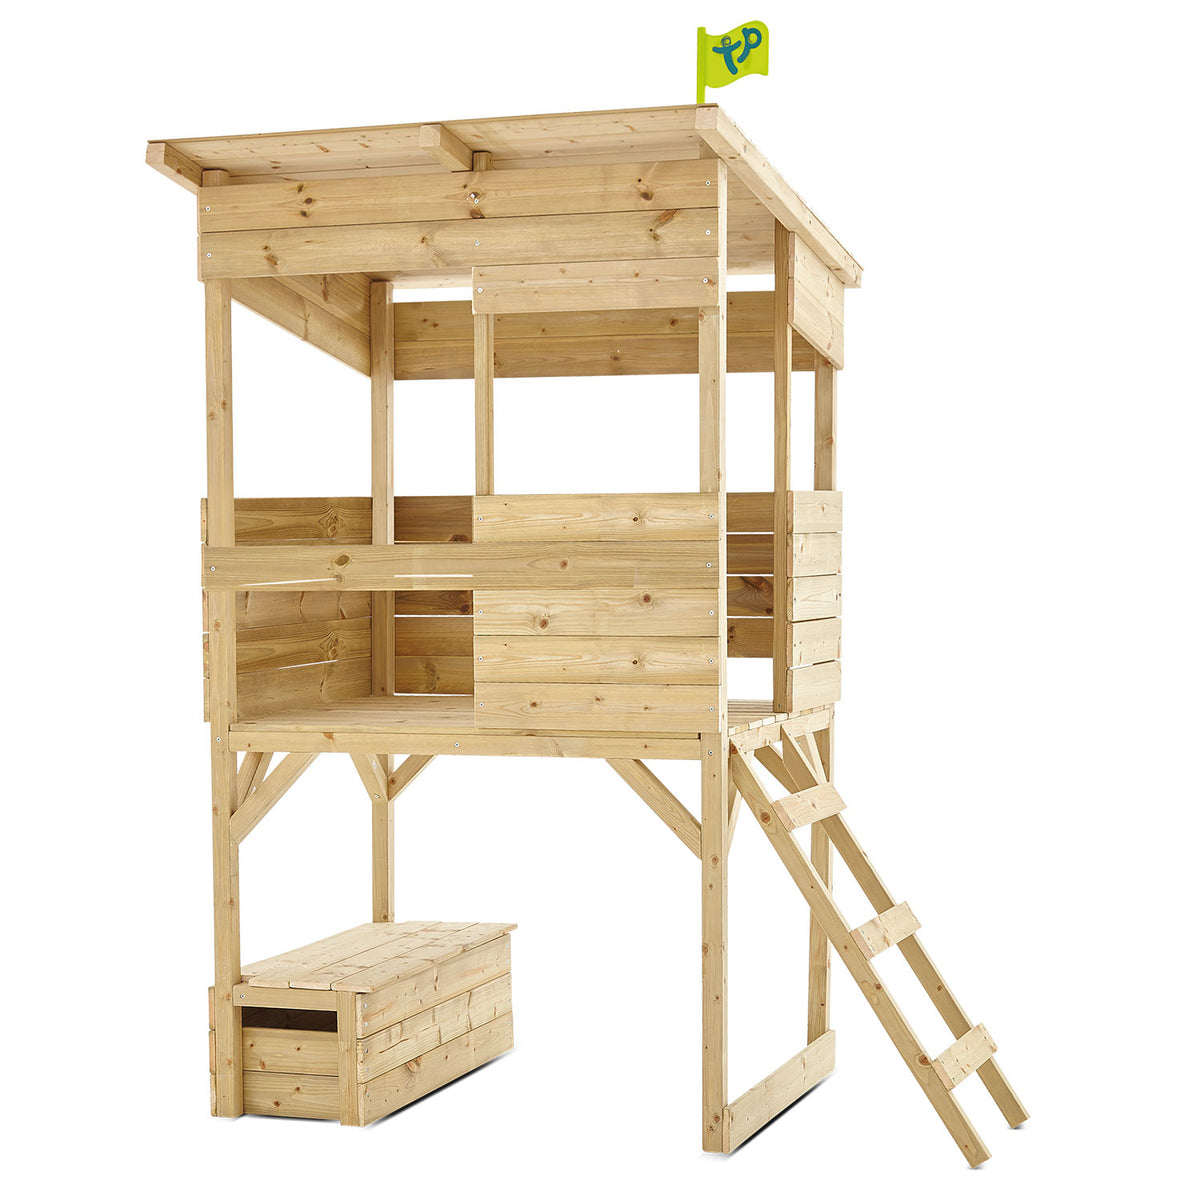 TP Toys Tree Tops Wooden Tower Playhouse with Toy Box